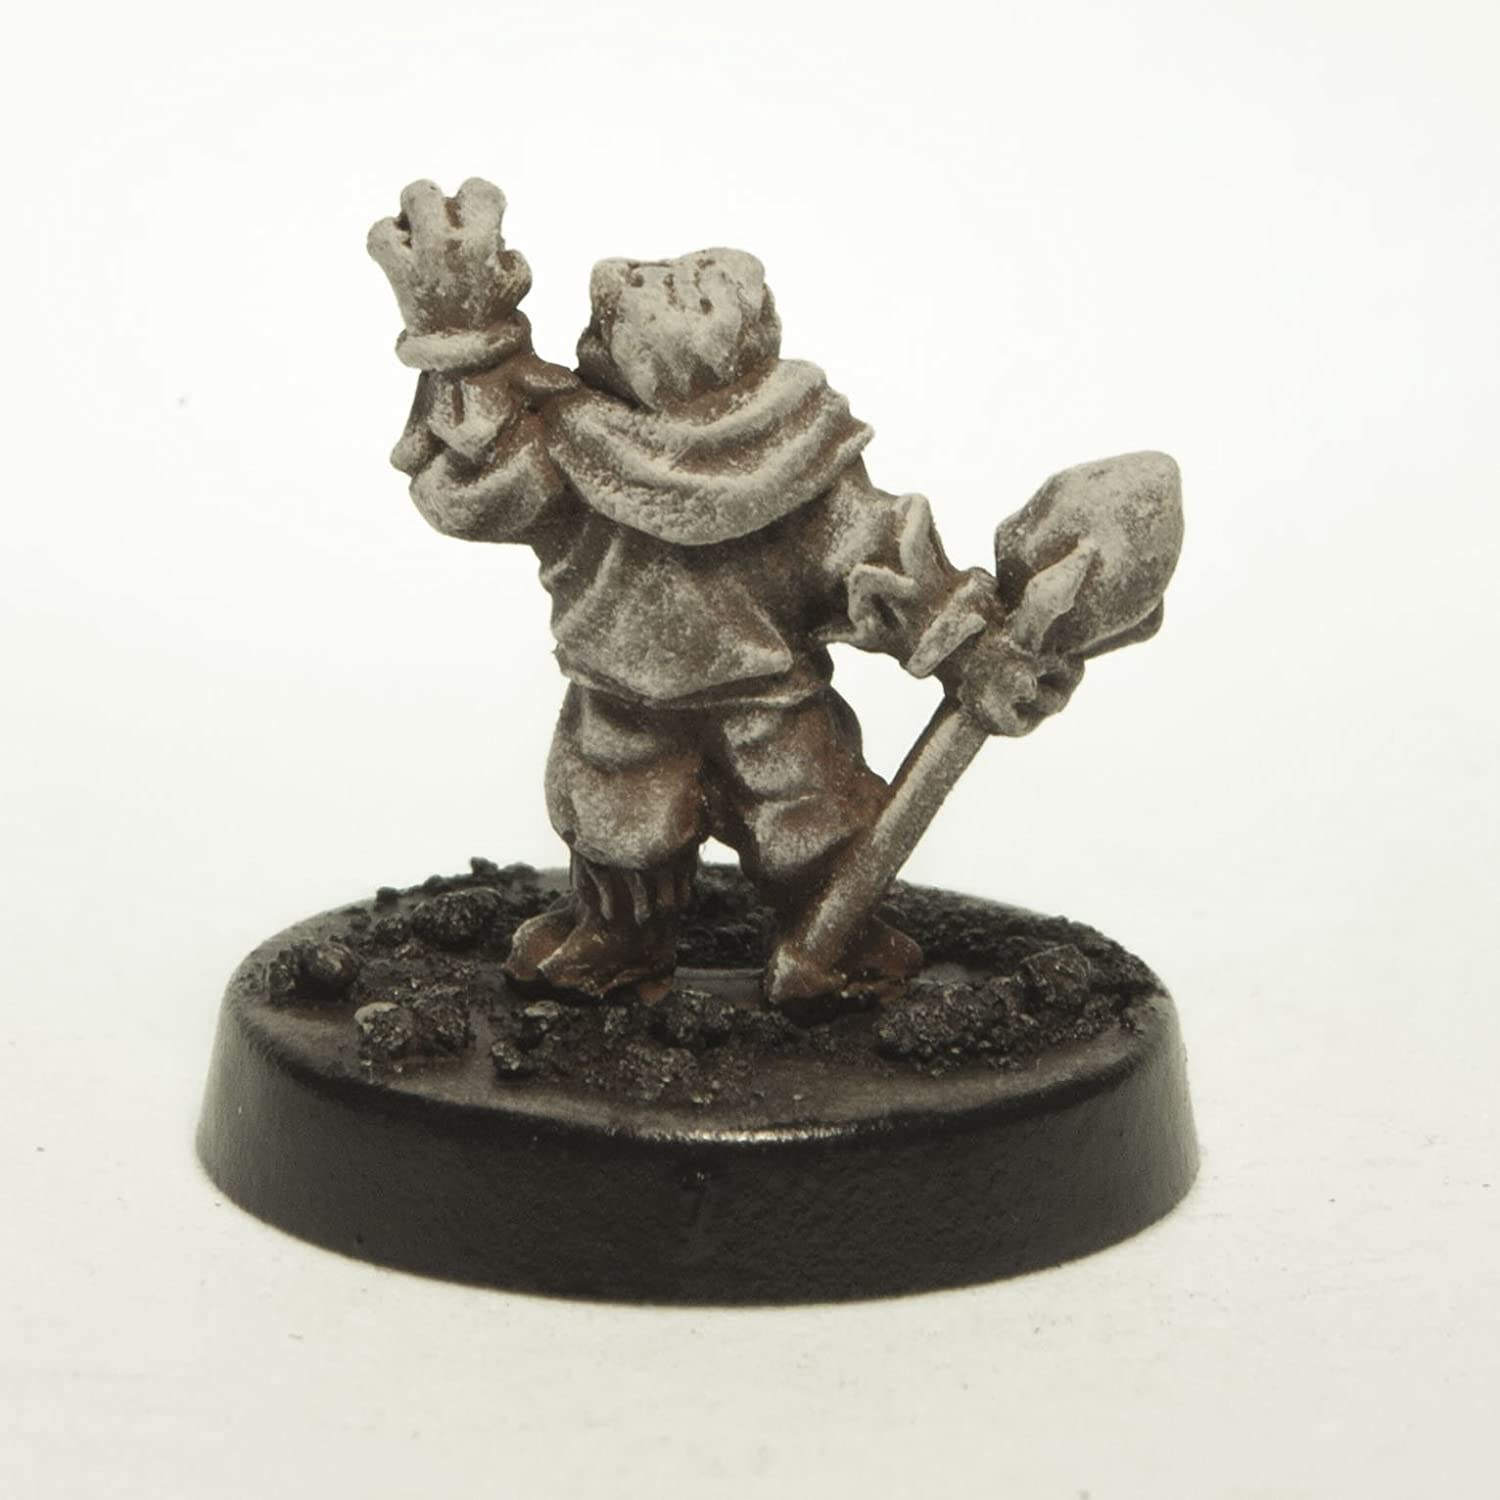 Made in US Stonehaven Miniatures for 28mm Scale Table Top War Games Stonehaven Grippli Ambassador Miniature Figure